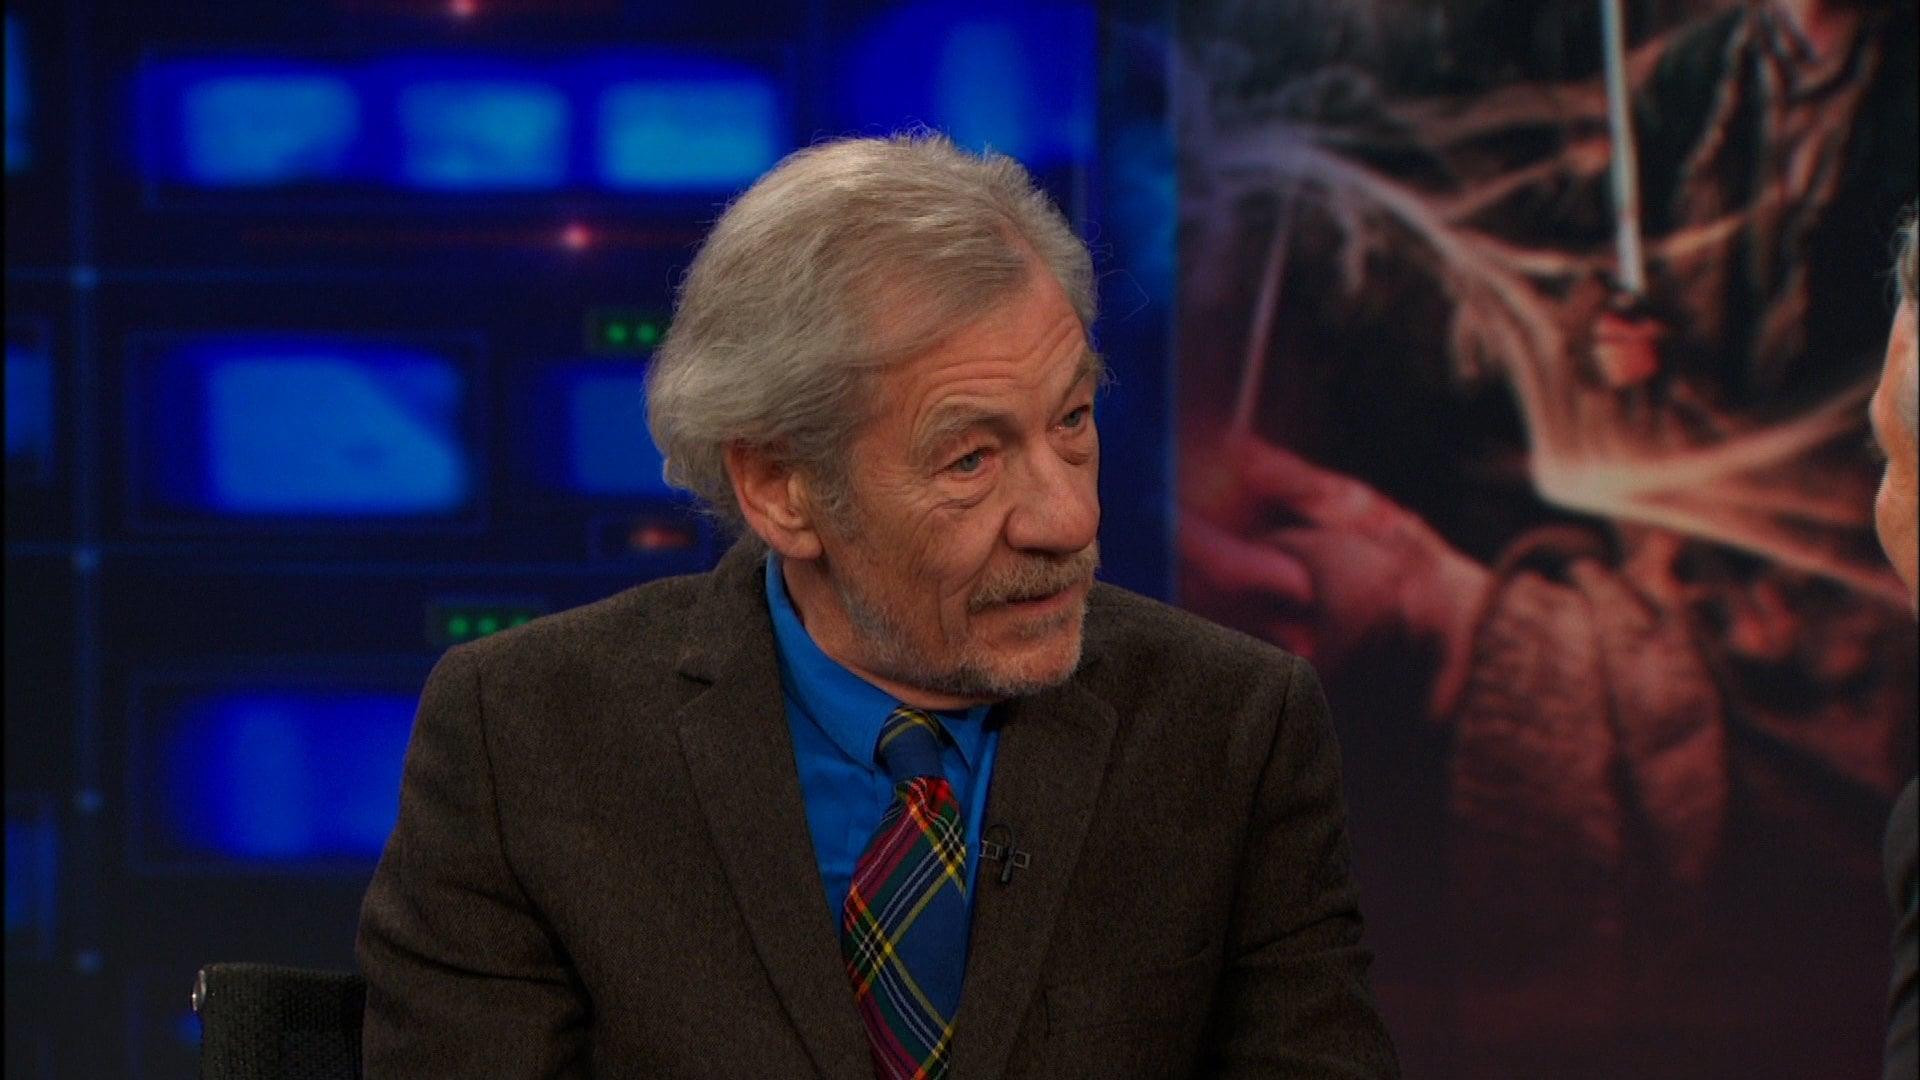 The Daily Show with Trevor Noah Season 19 :Episode 29  Ian McKellen